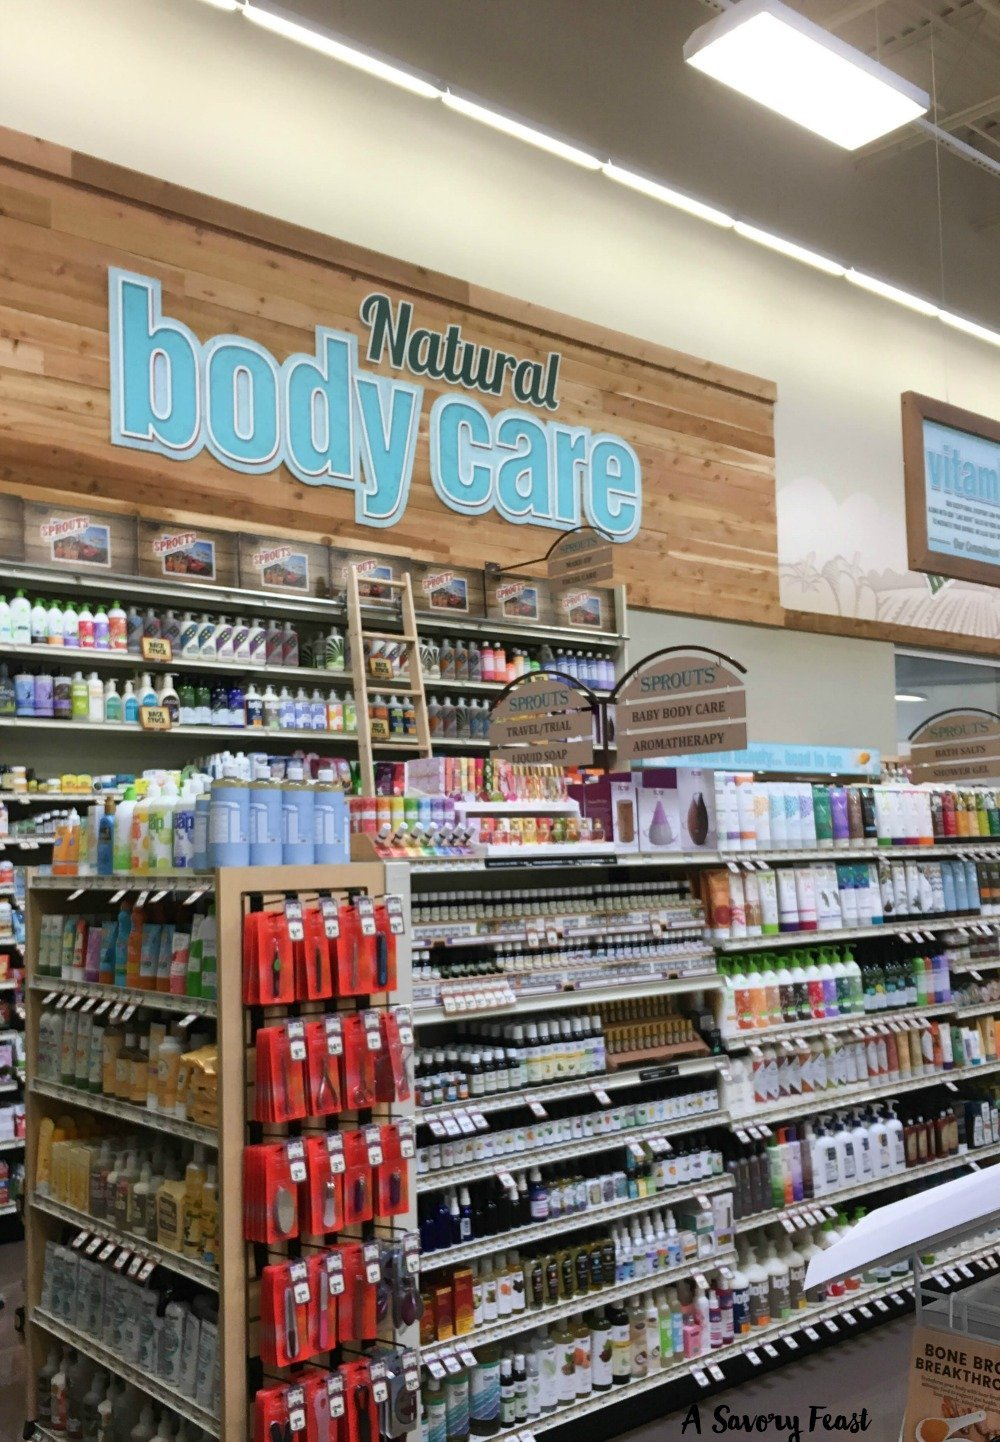 The Natural Body Care section at Sprouts carries a wide variety of vitamins, probiotics, skin care items, sunscreen and much more.